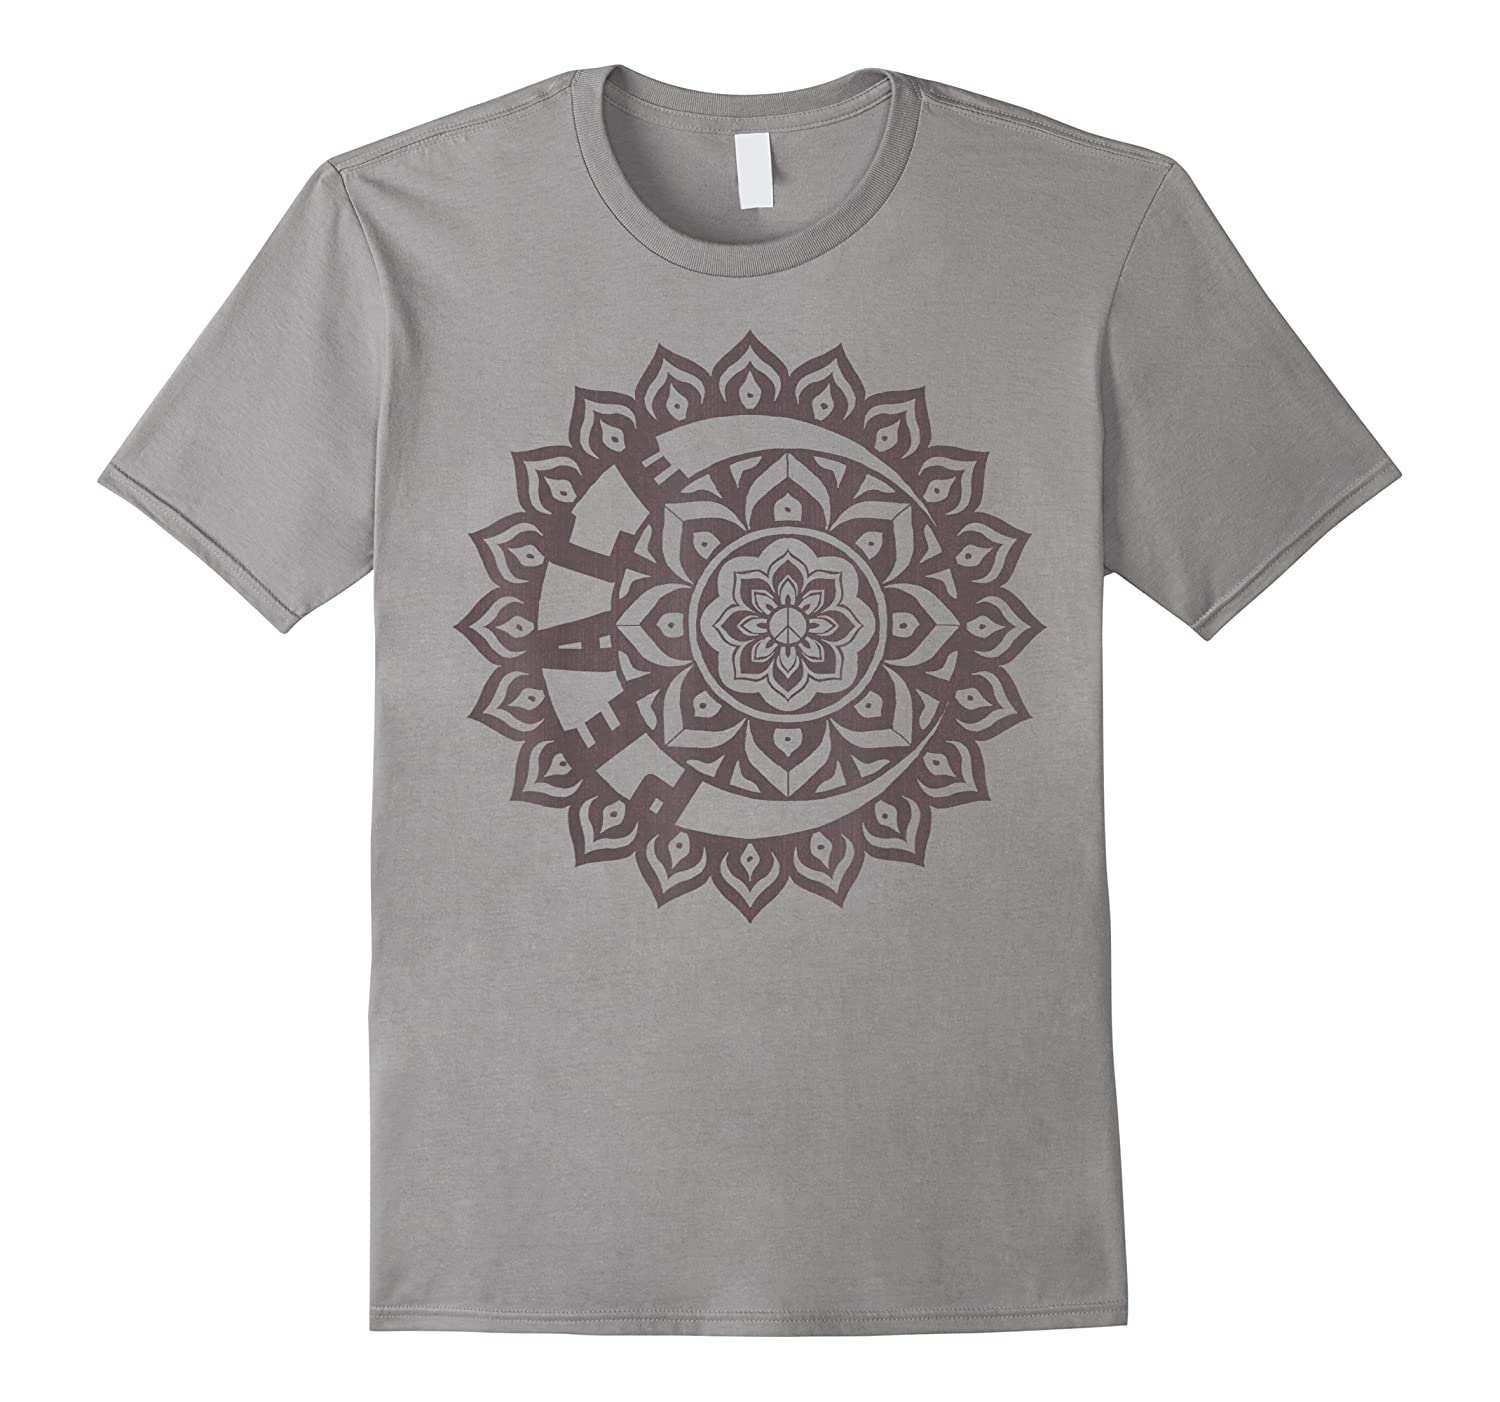 Peace Inside Crescent Moon Inside Flower Graphic Shirts